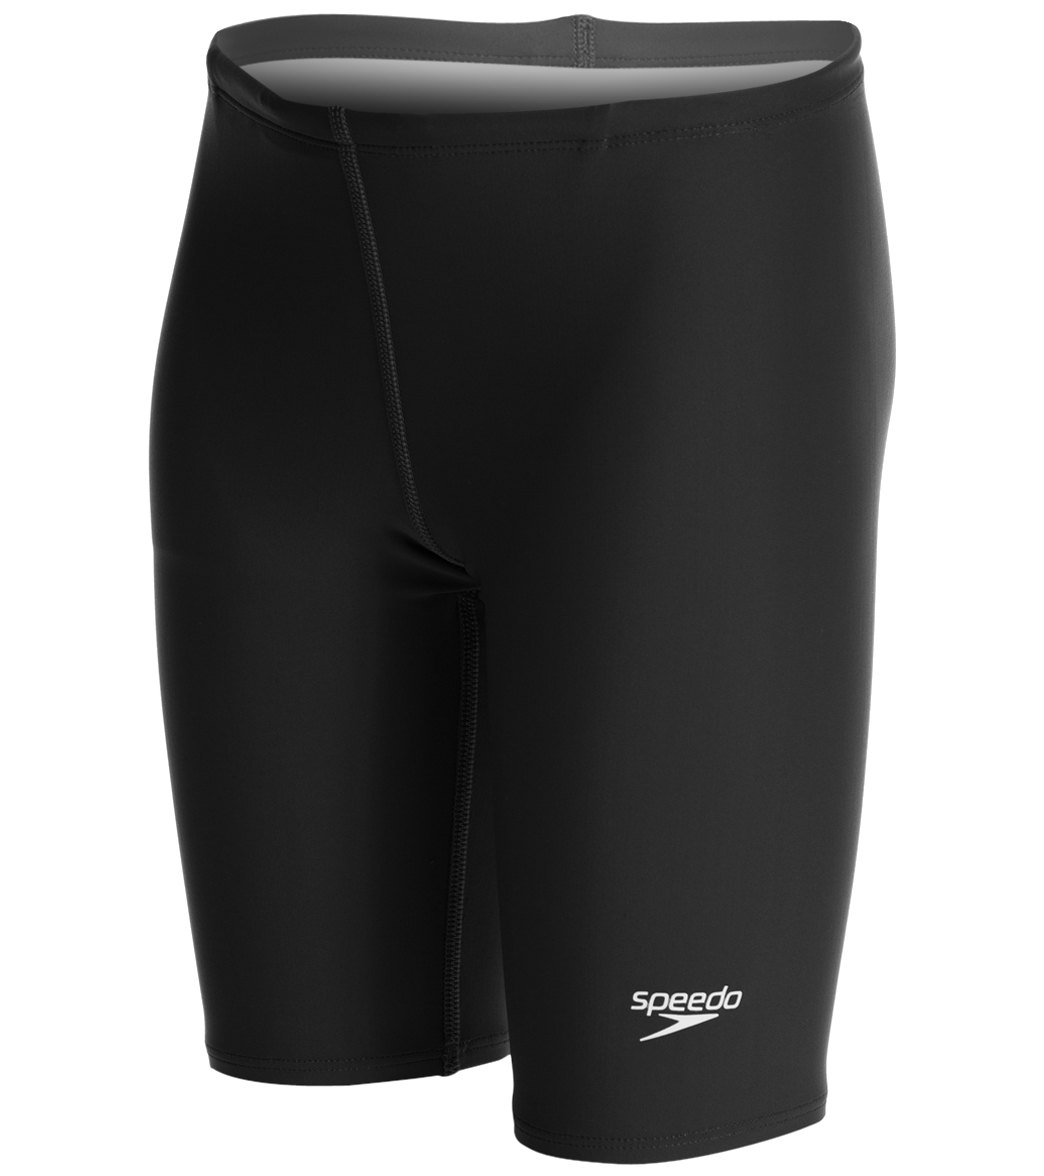 96a30f60f0a3c Speedo Boys' Learn to Swim Jammer (4-12) at SwimOutlet.com